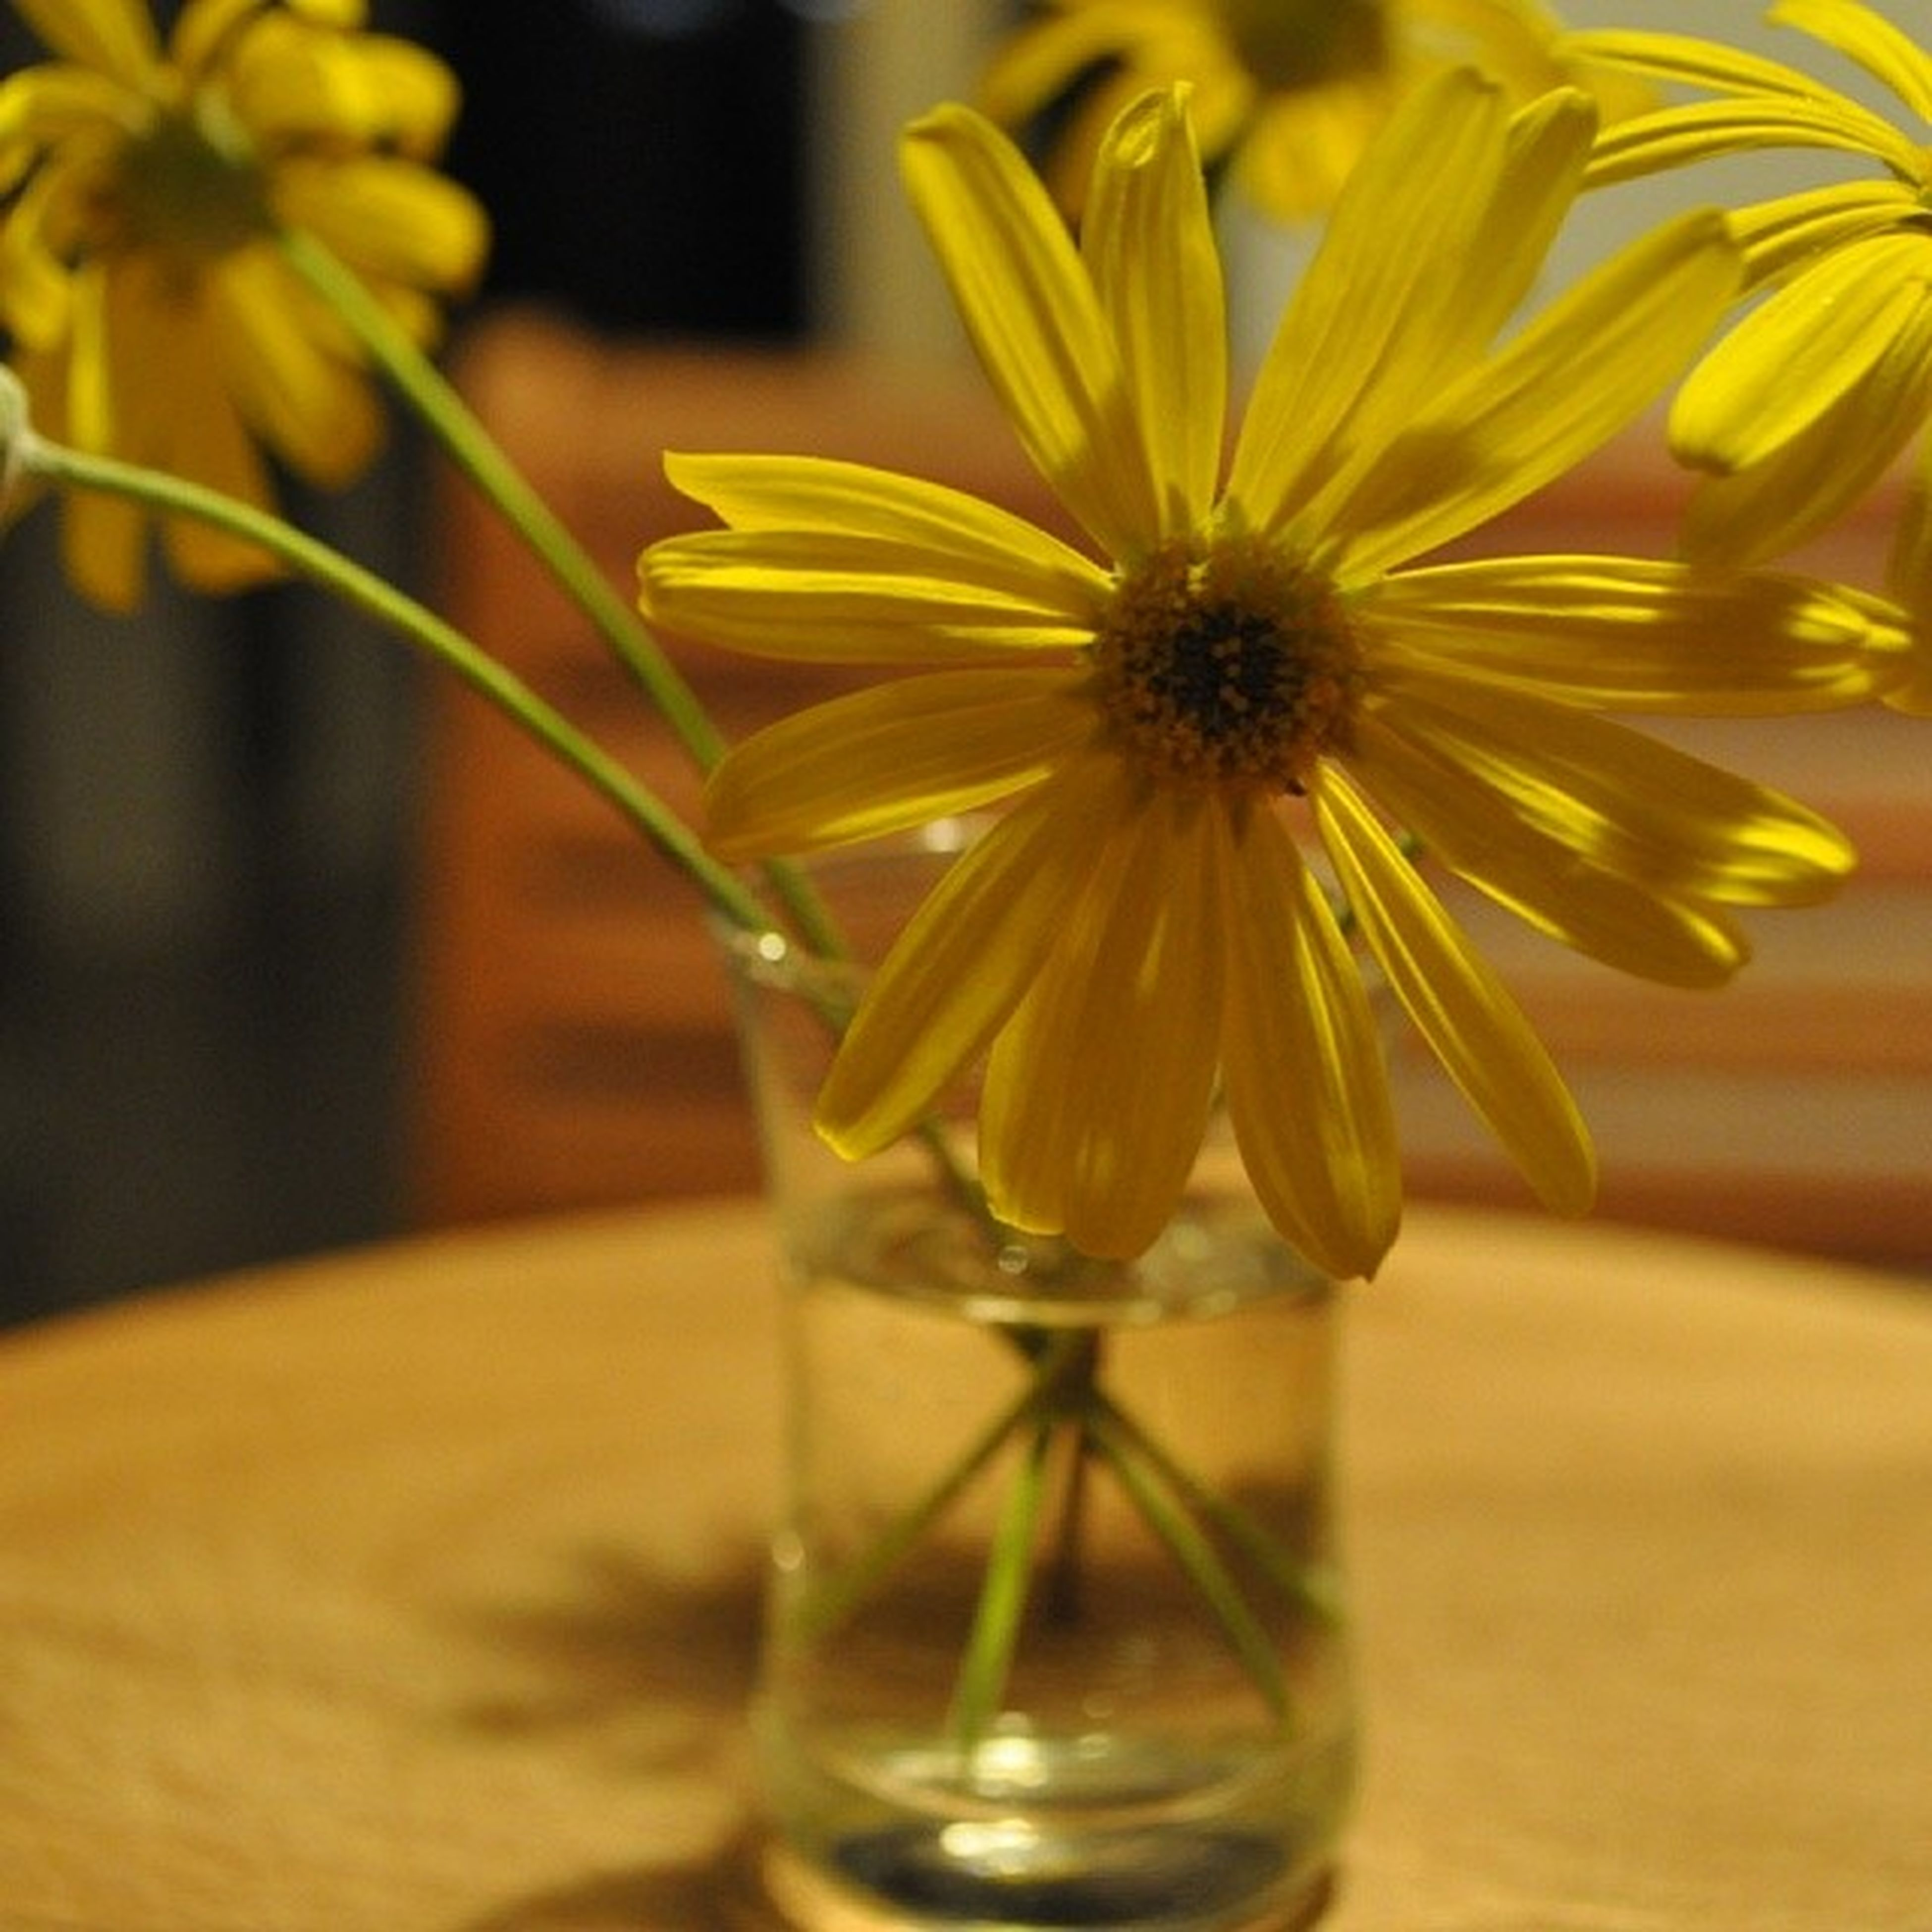 flower, freshness, petal, fragility, yellow, flower head, indoors, close-up, vase, table, focus on foreground, beauty in nature, glass - material, nature, growth, single flower, flower arrangement, transparent, pollen, water